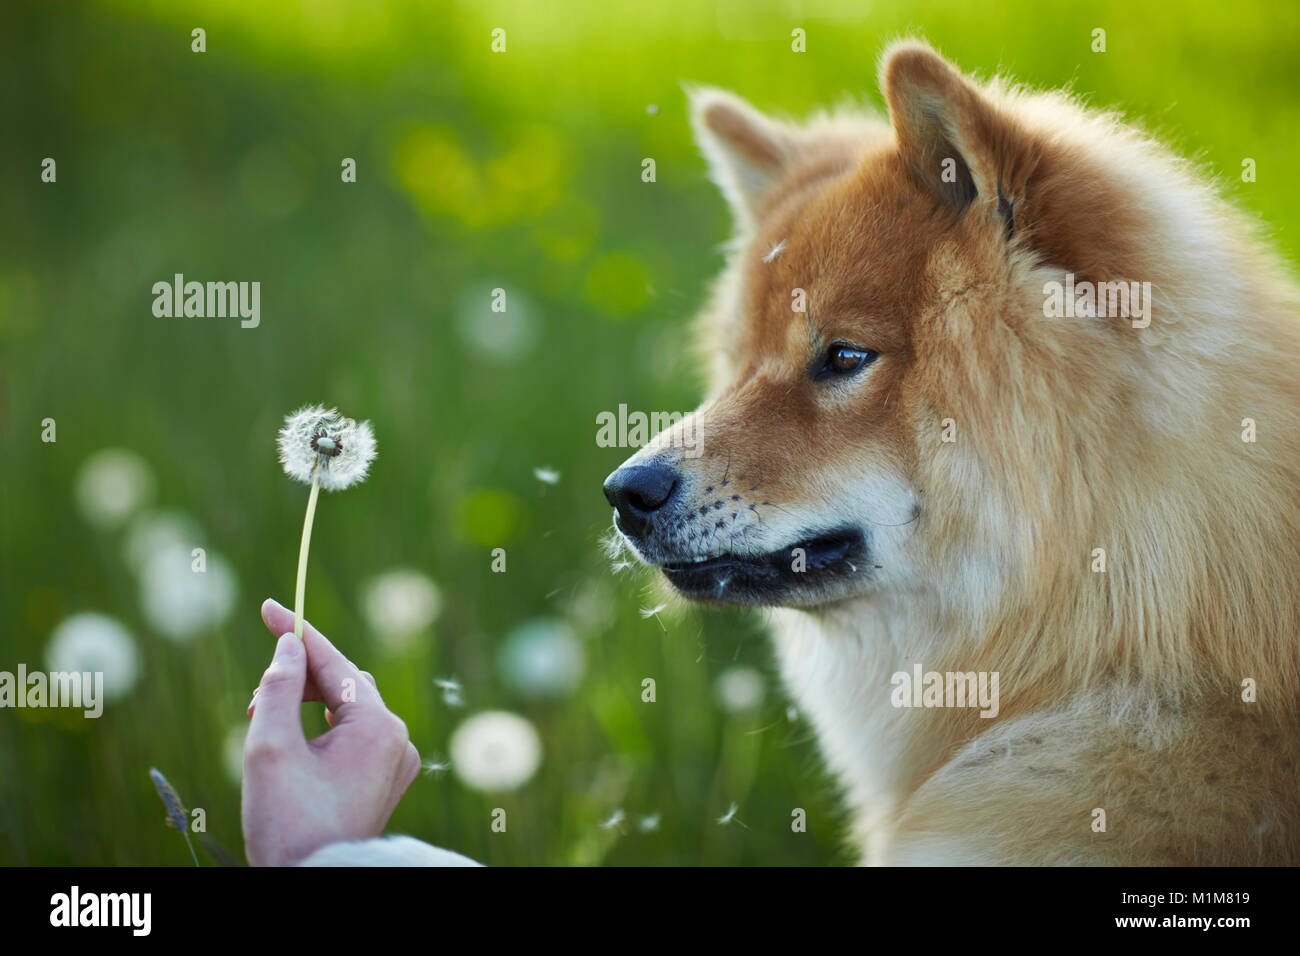 Eurasier, Eurasian. Adult dog watching blowball, held by hand. Germany - Stock Image